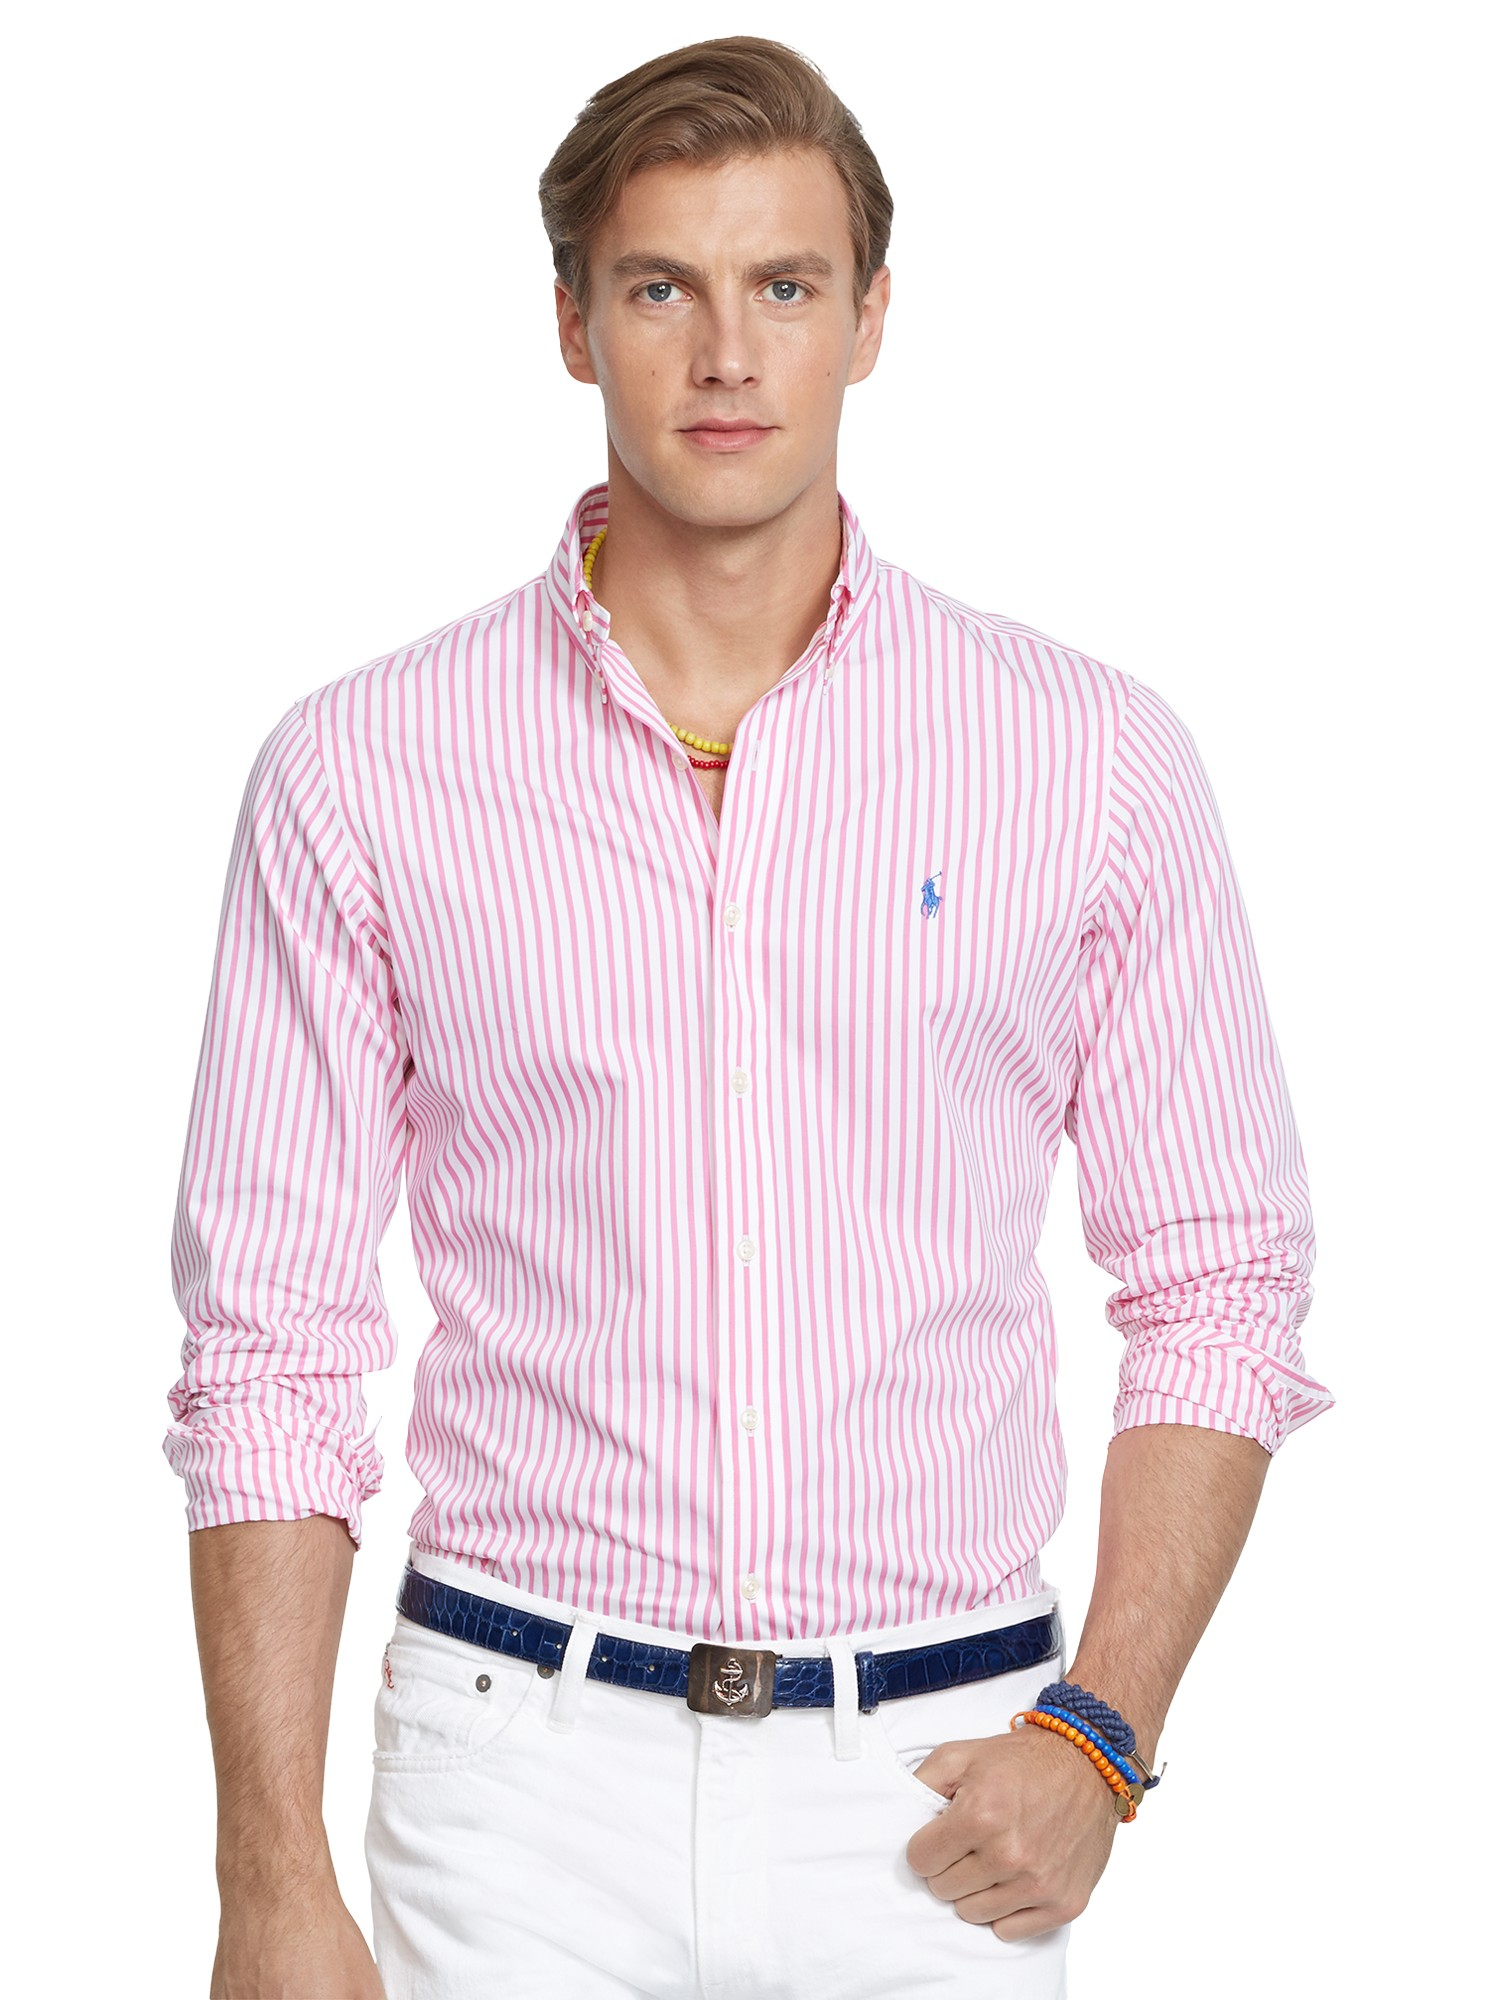 polo ralph lauren bengal stripe poplin shirt in pink for men lyst. Black Bedroom Furniture Sets. Home Design Ideas